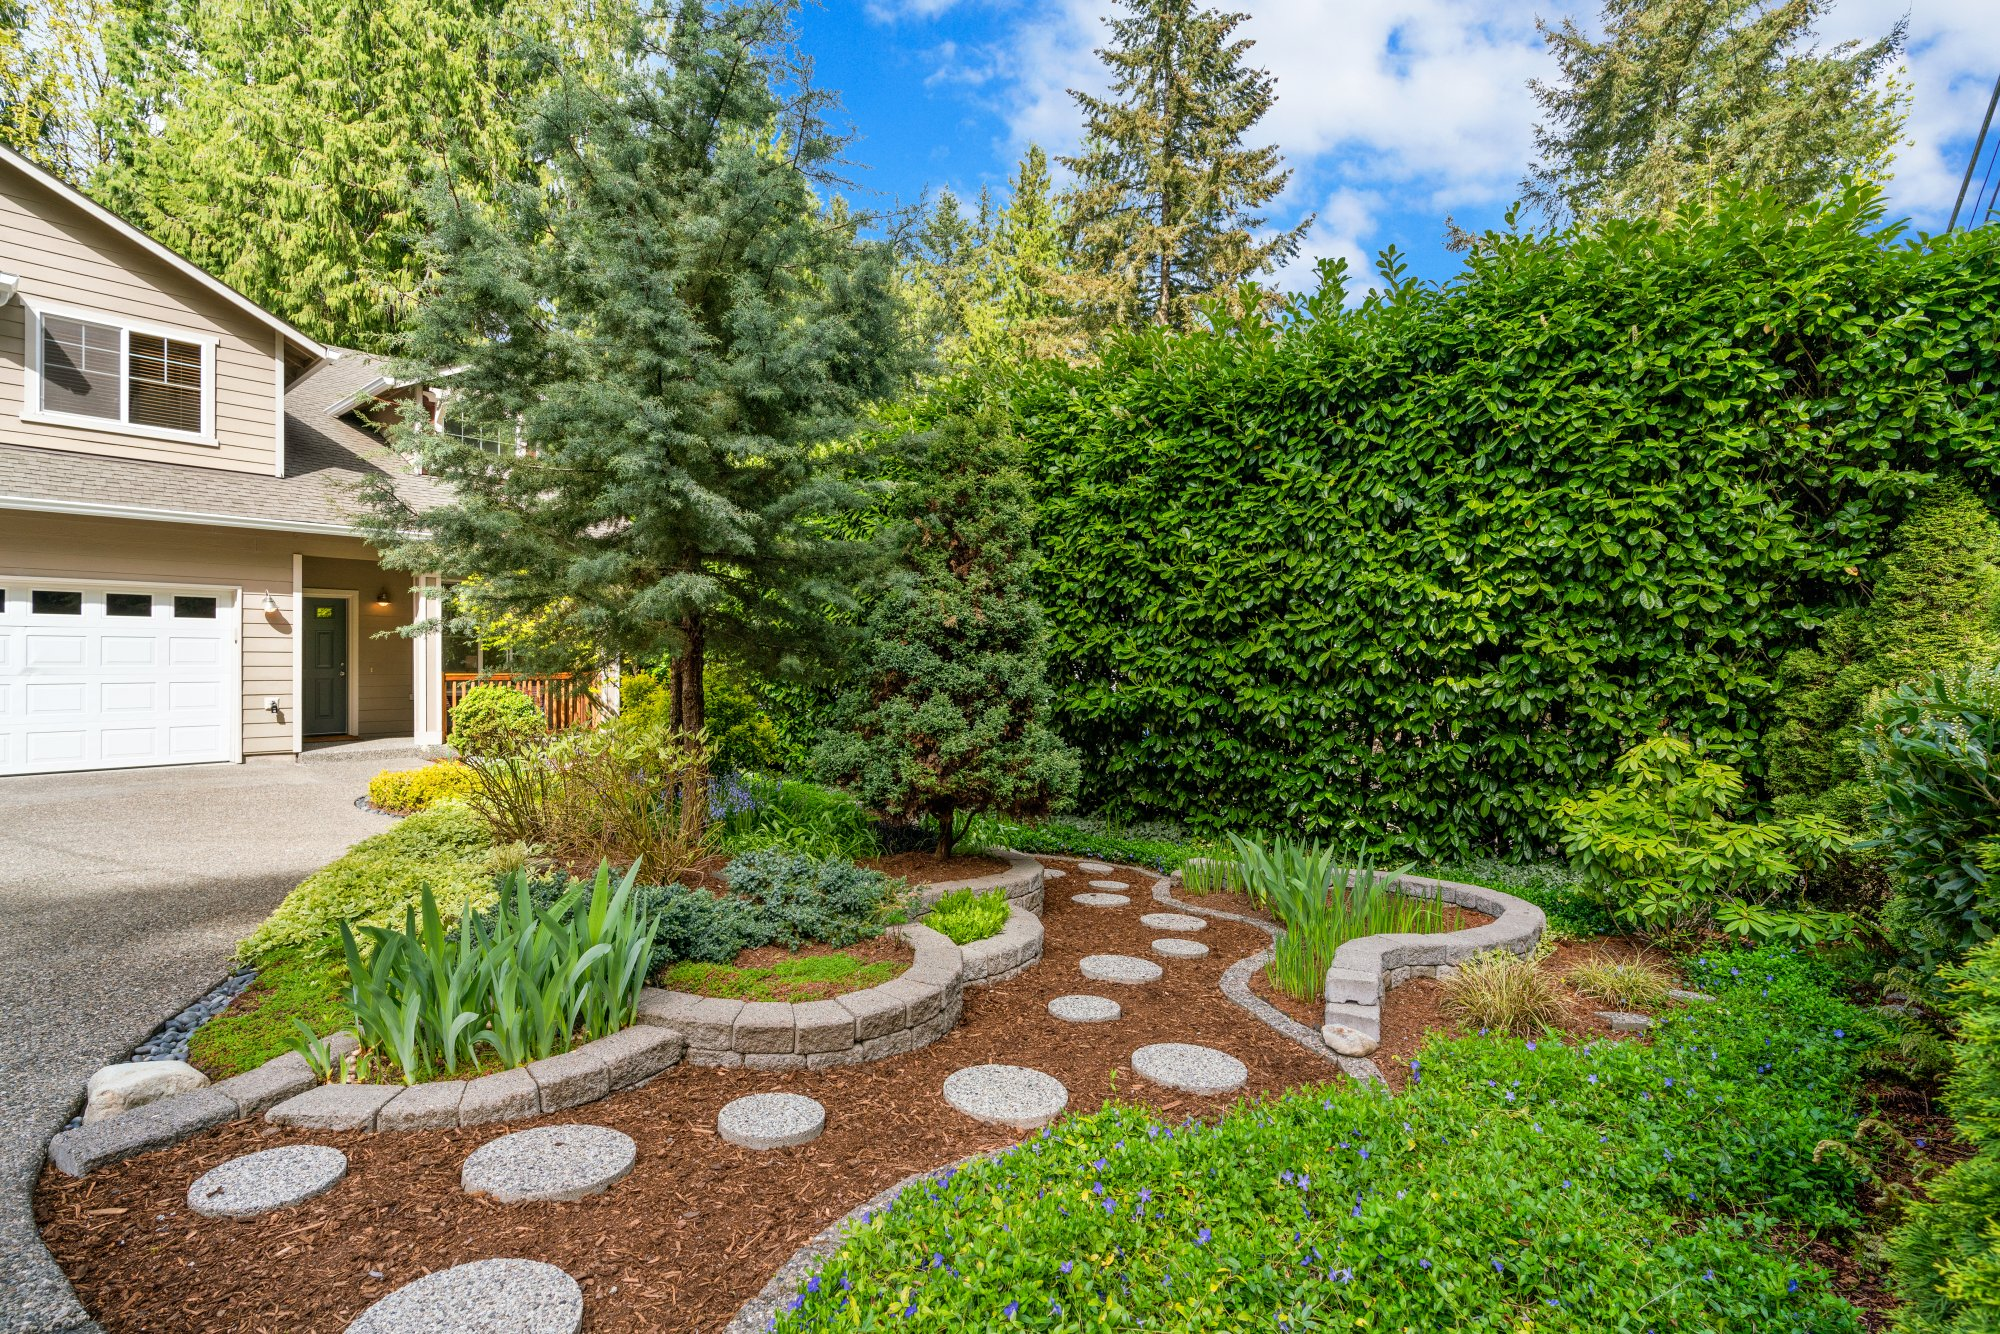 035-2946Northeast178thStreet-LakeForestPark-WA-98155-SMALL